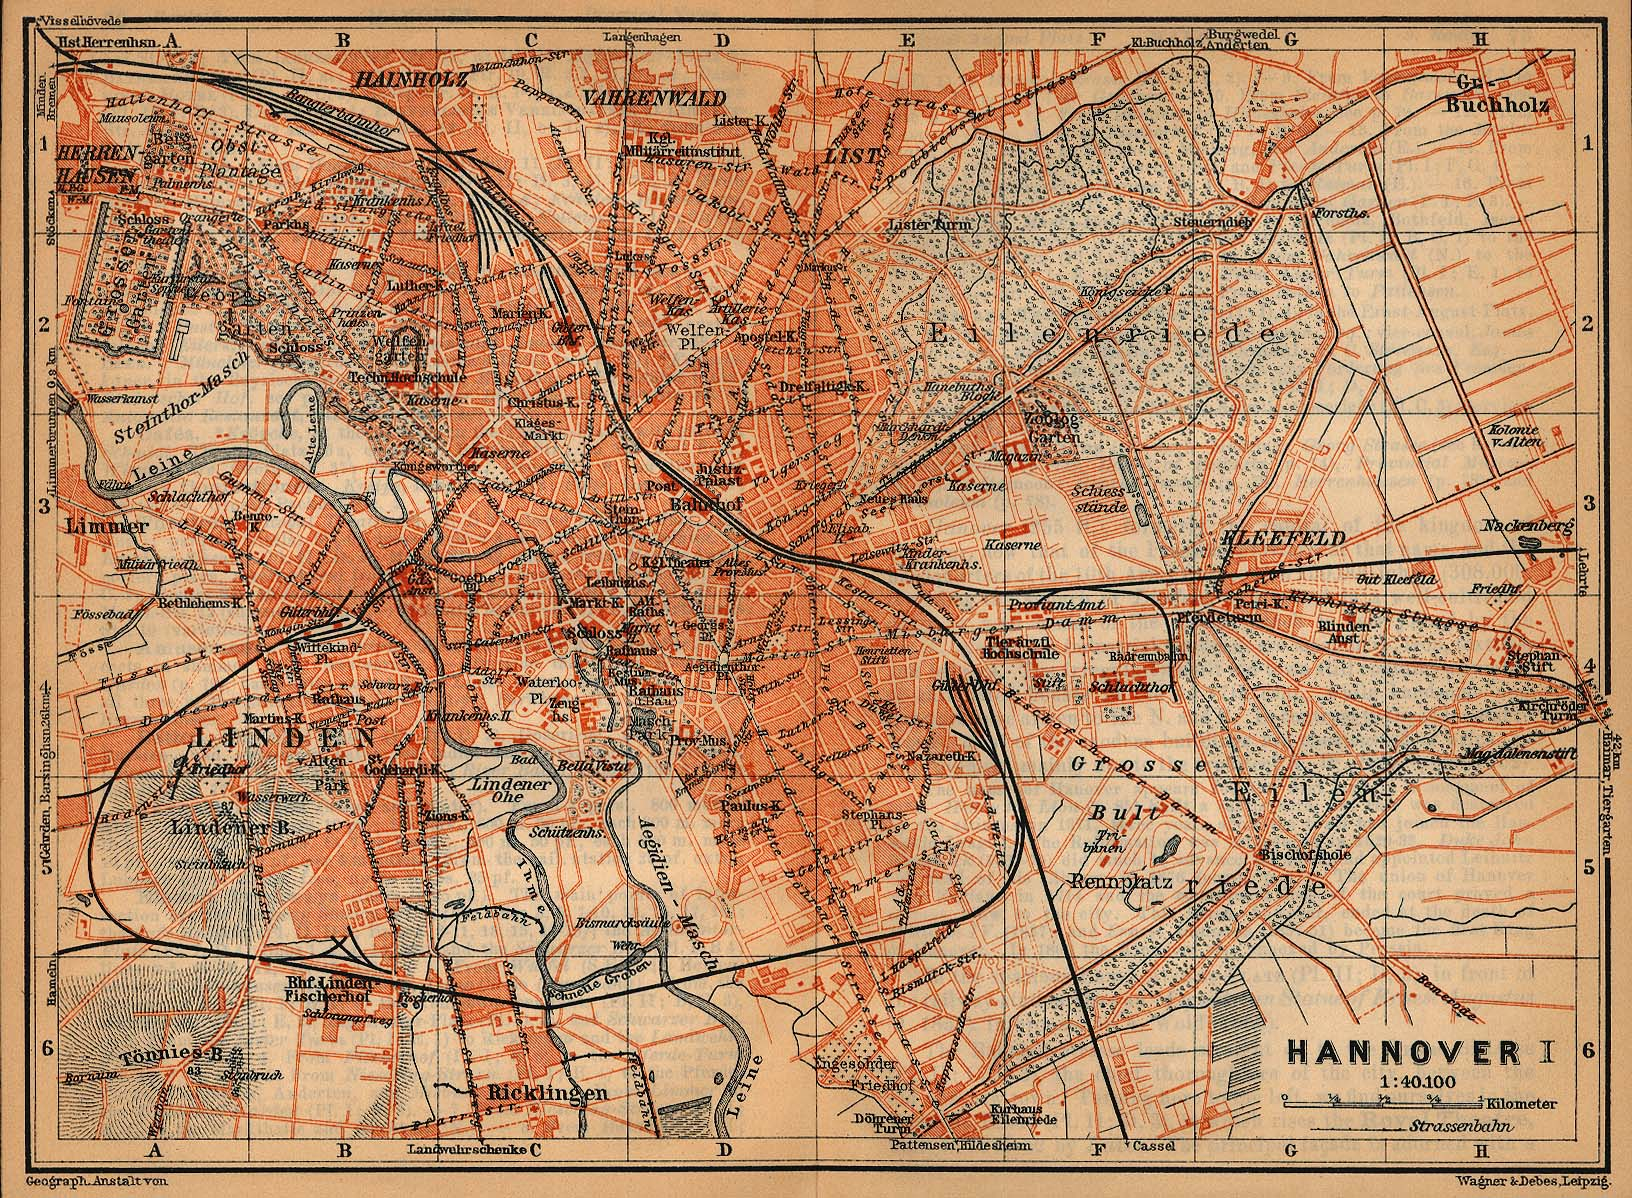 Hanover Map, Germany 1910